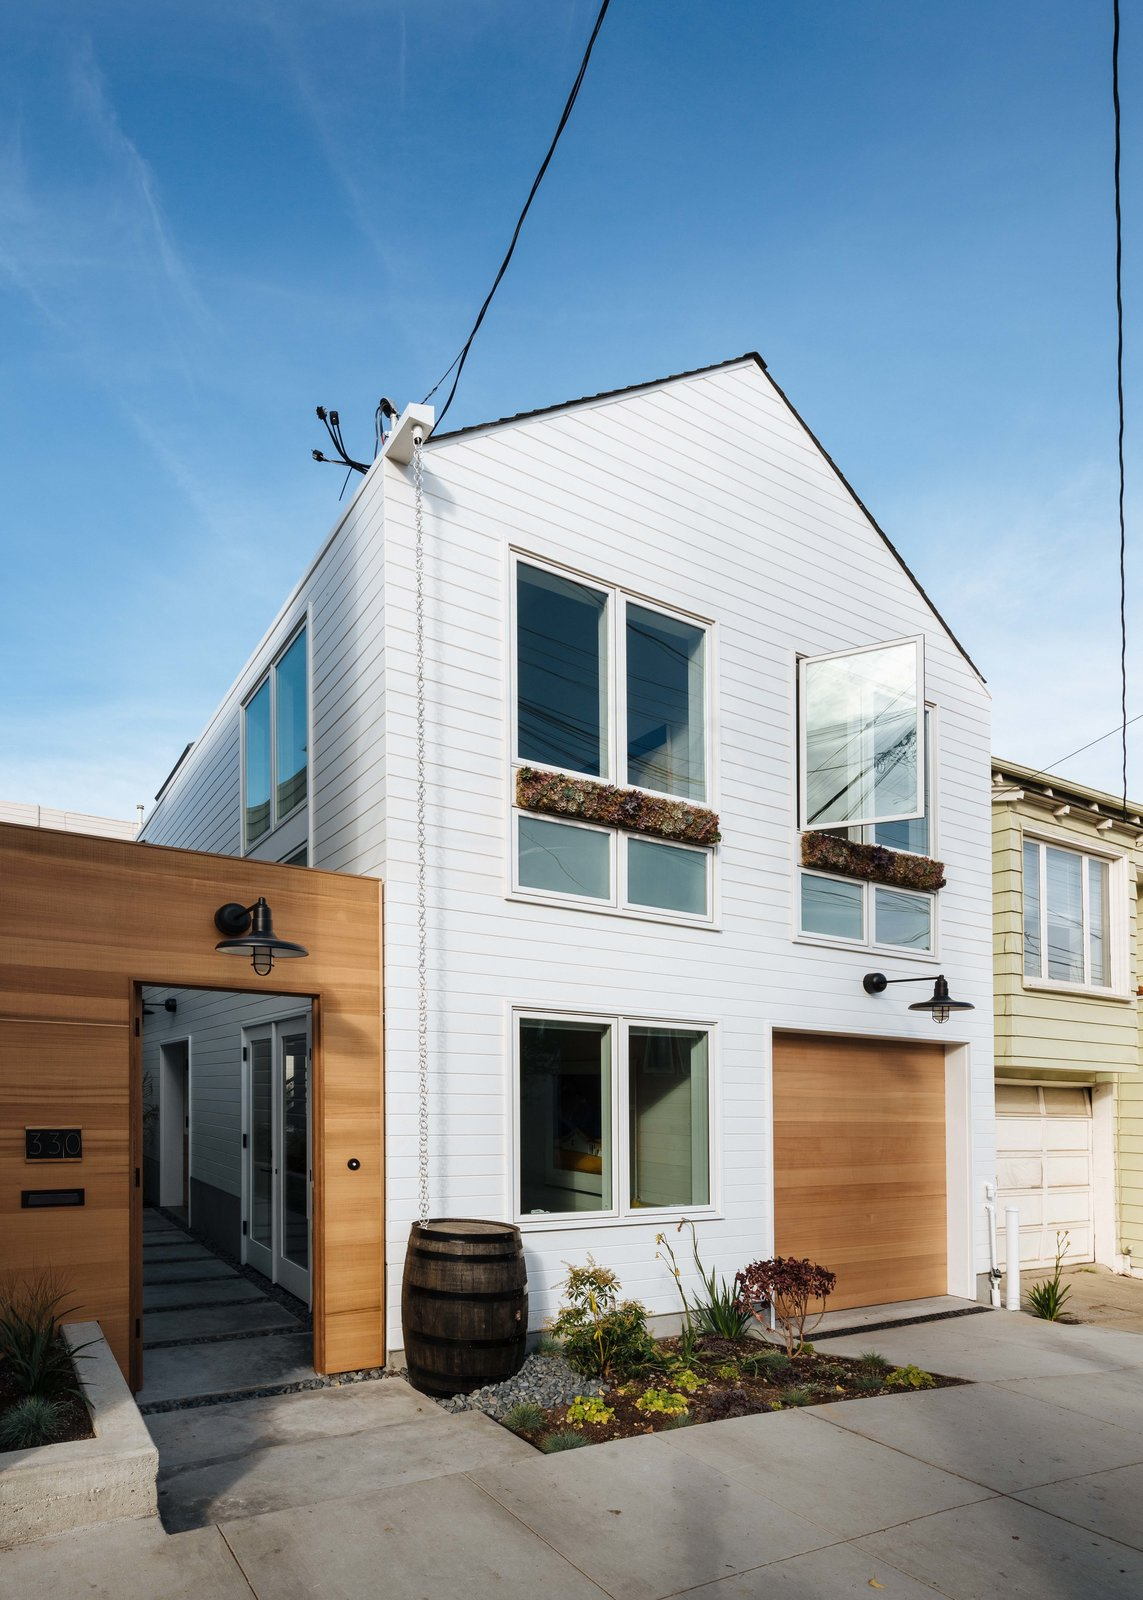 Space-Efficient Renovation in San Francisco, California Tagged: Outdoor, Gardens, Walkways, Front Yard, and Concrete Patio, Porch, Deck.  Space-Efficient San Francisco Renovation by Red Dot Studio